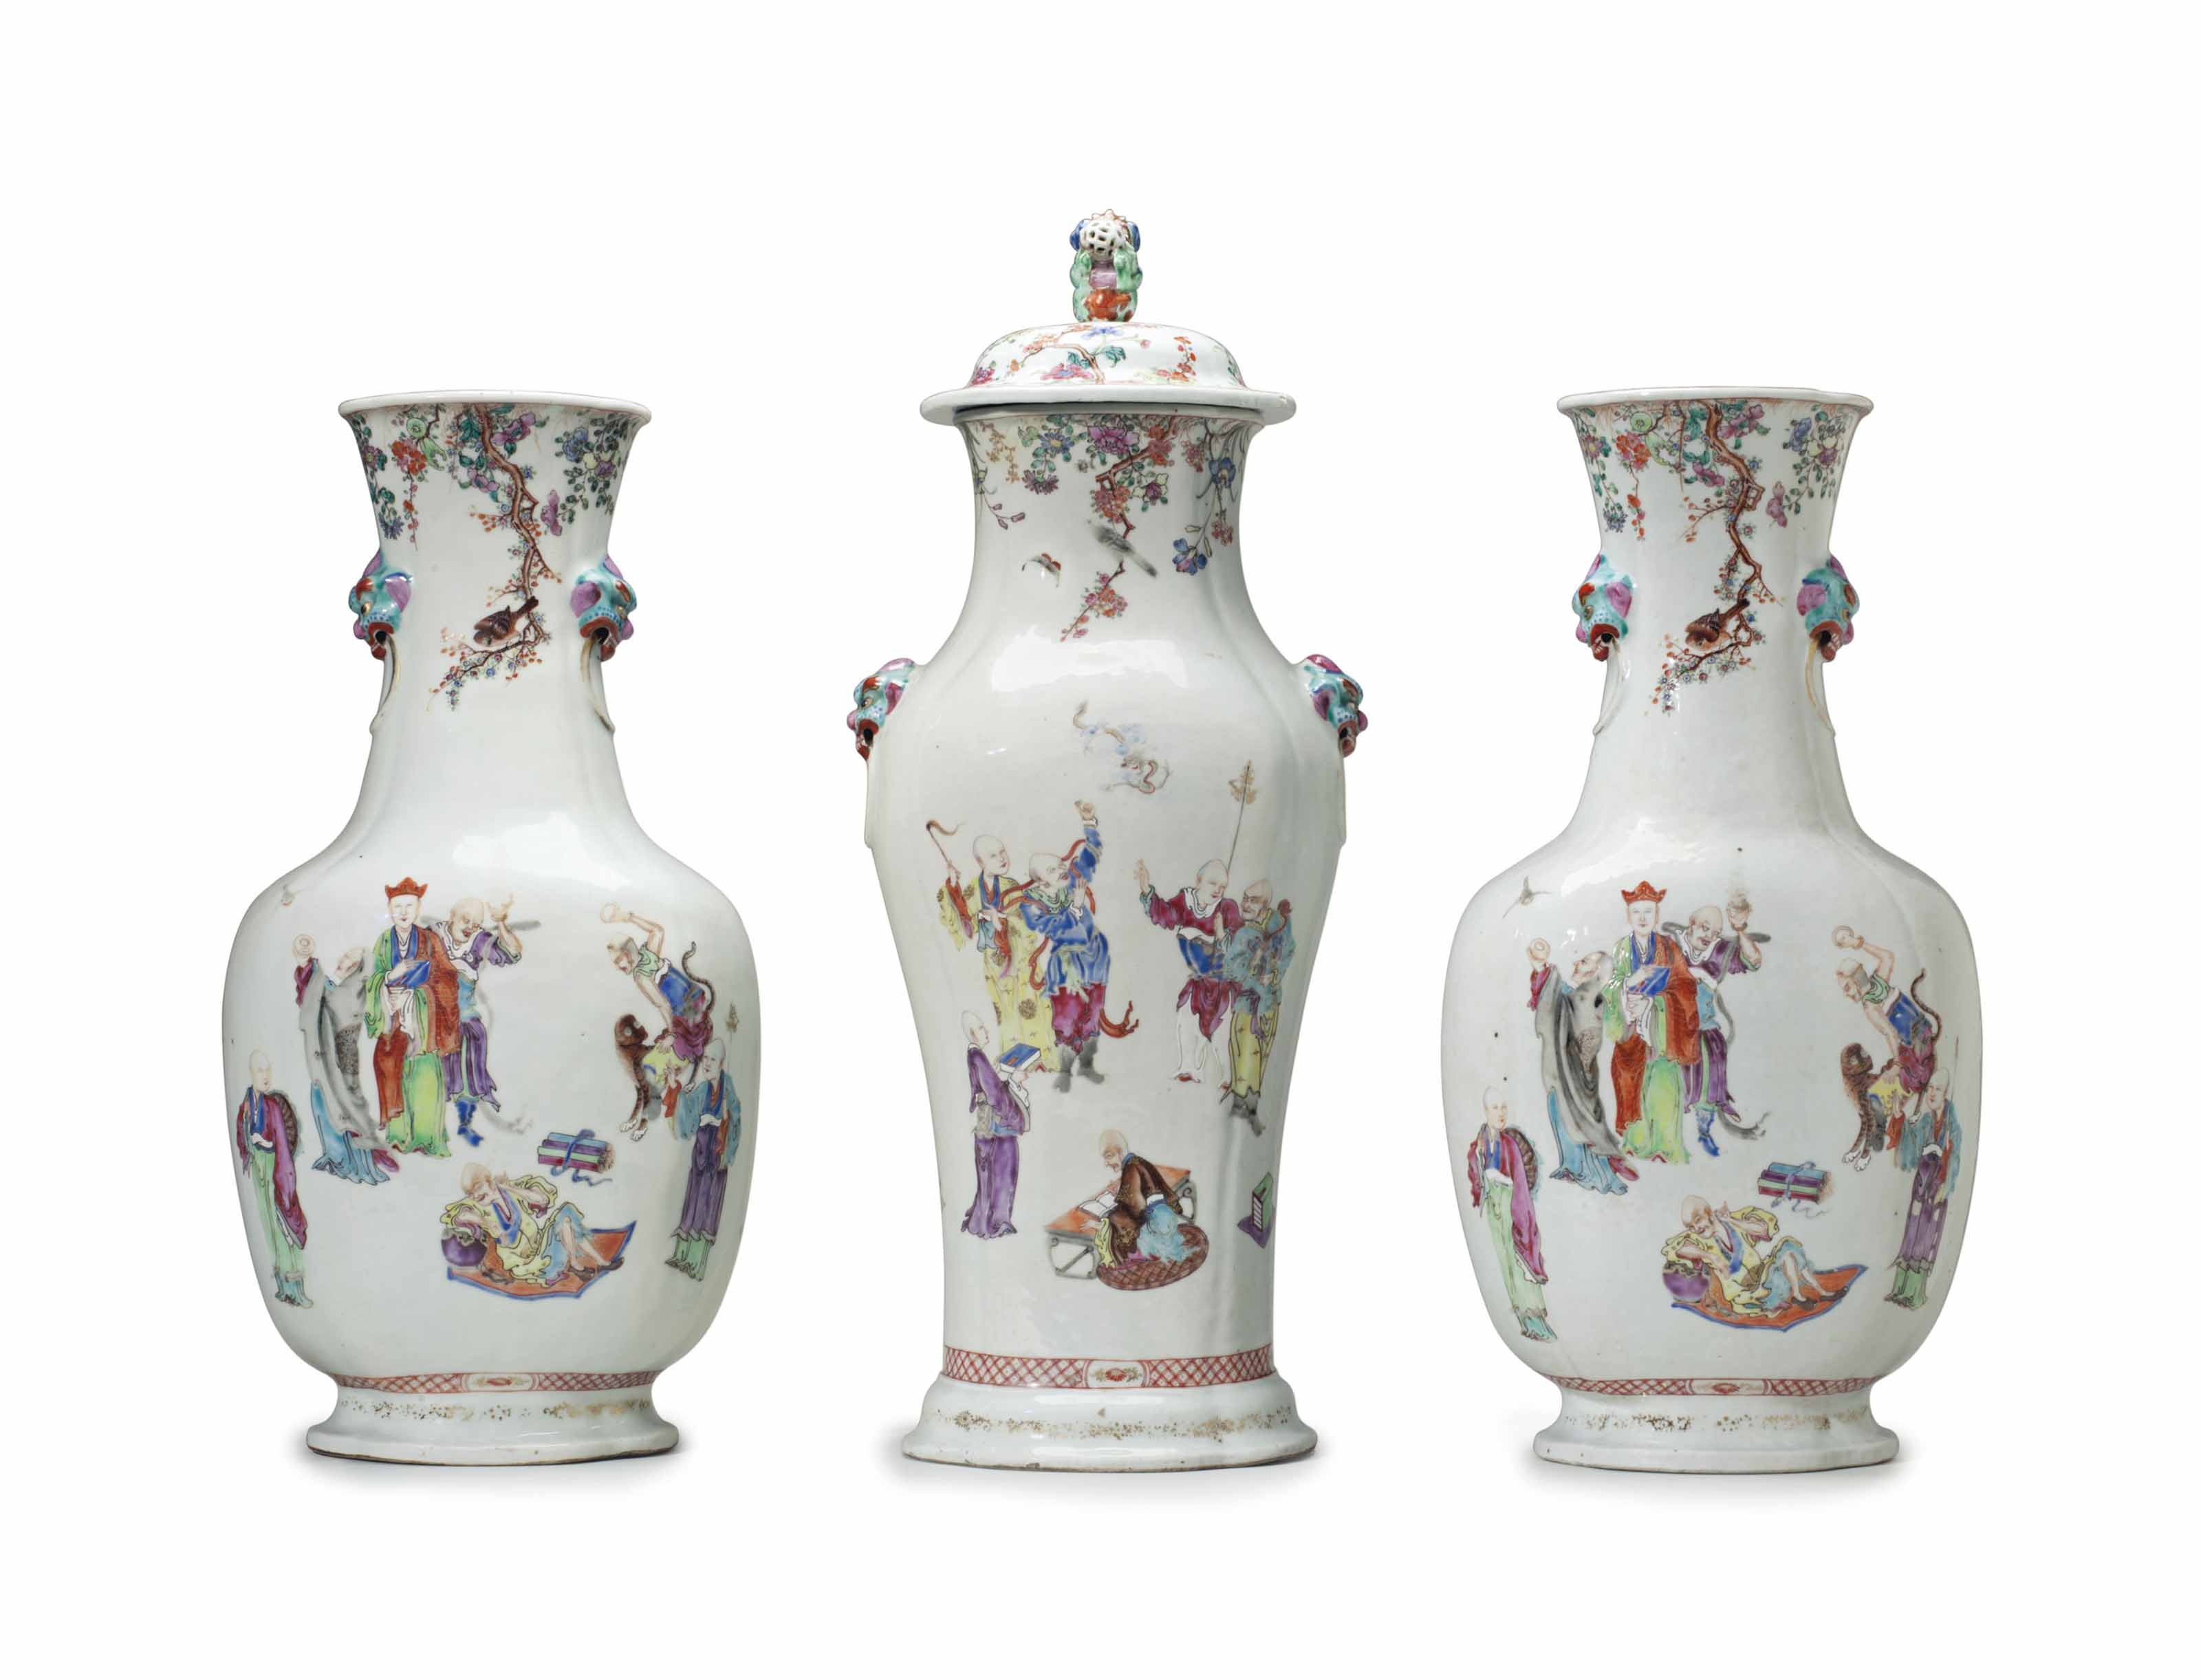 A VERY LARGE THREE-PIECE FAMILLE ROSE GARNITURE